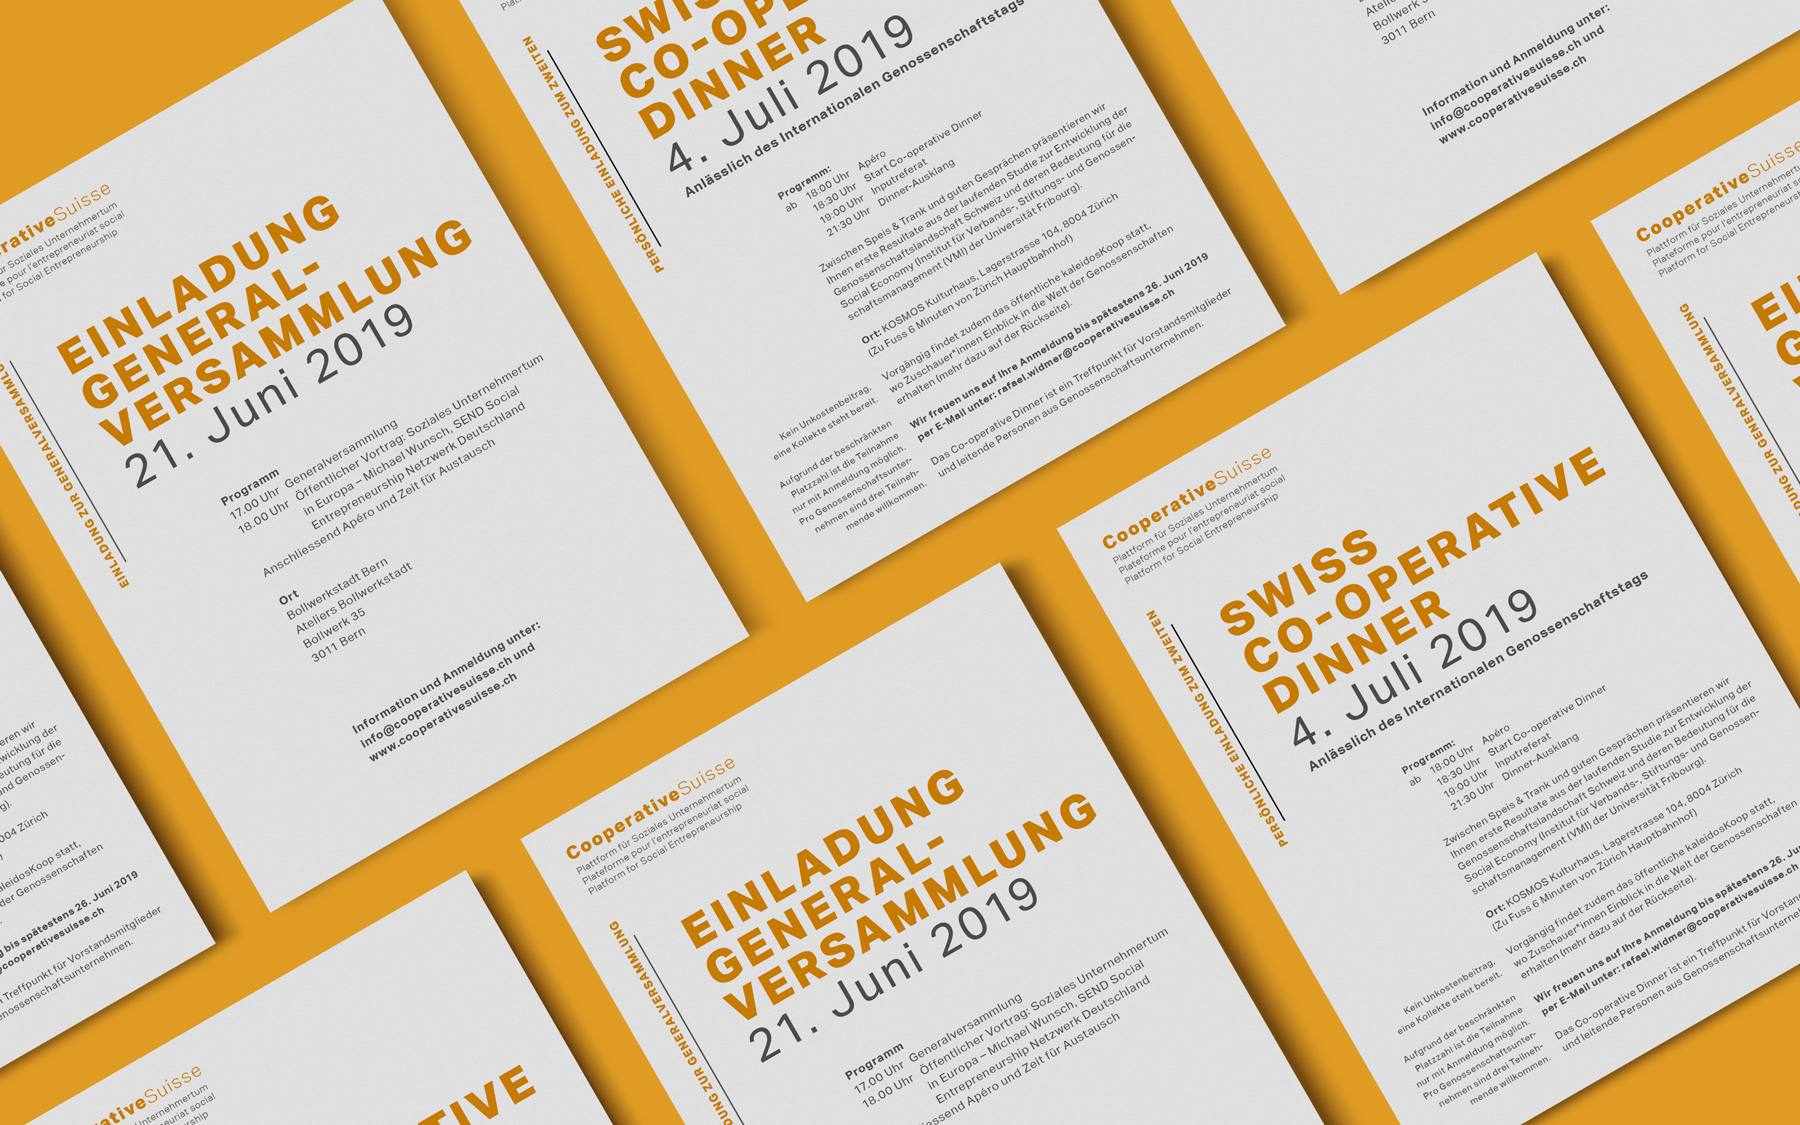 Flyers_Cooperative_Suisse